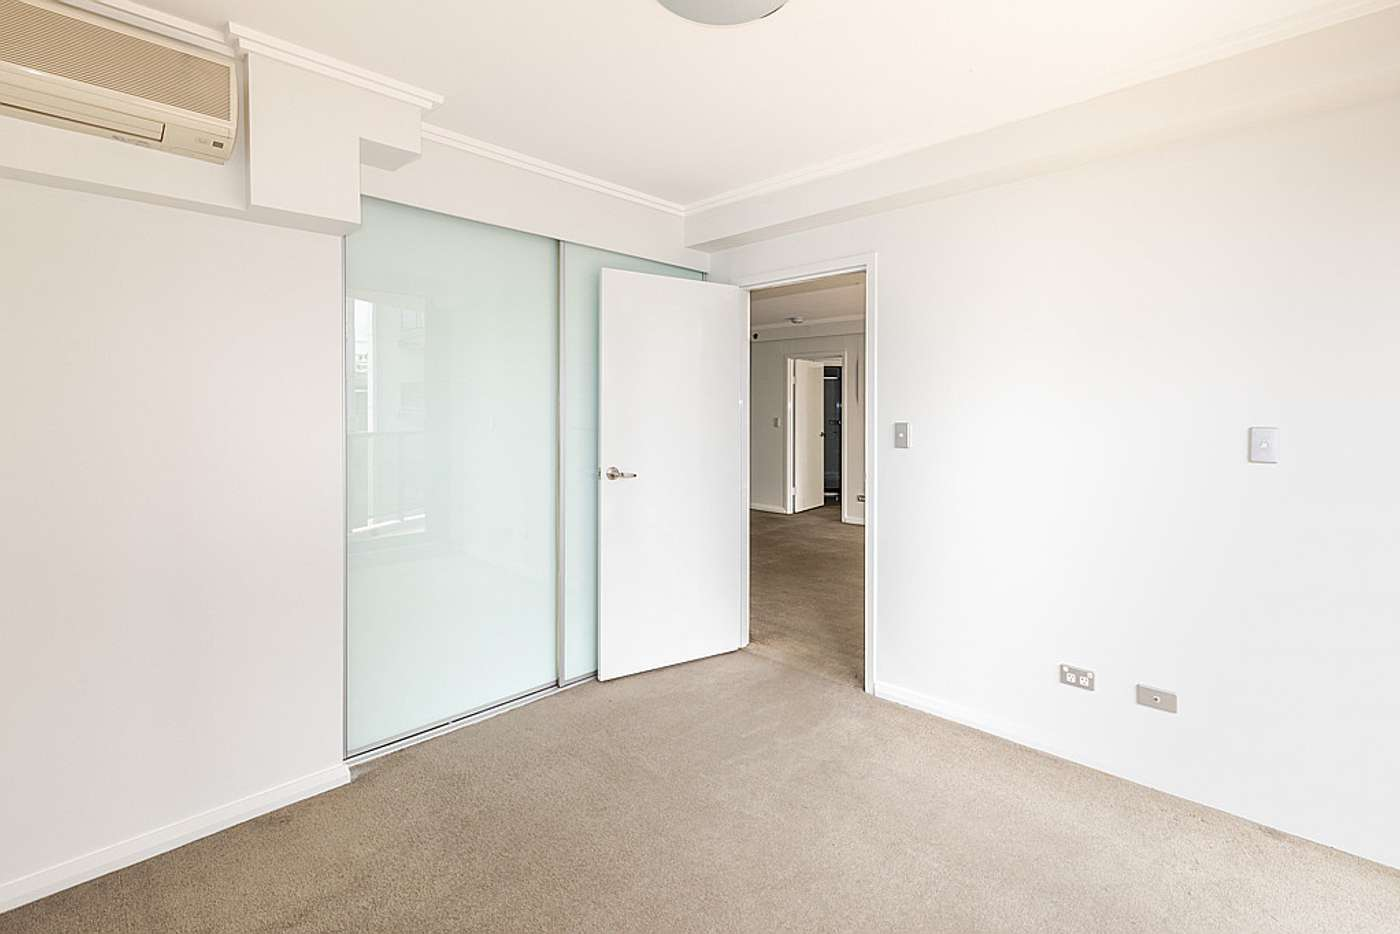 Seventh view of Homely apartment listing, 204/13 - 15 Hassall Street, Parramatta NSW 2150